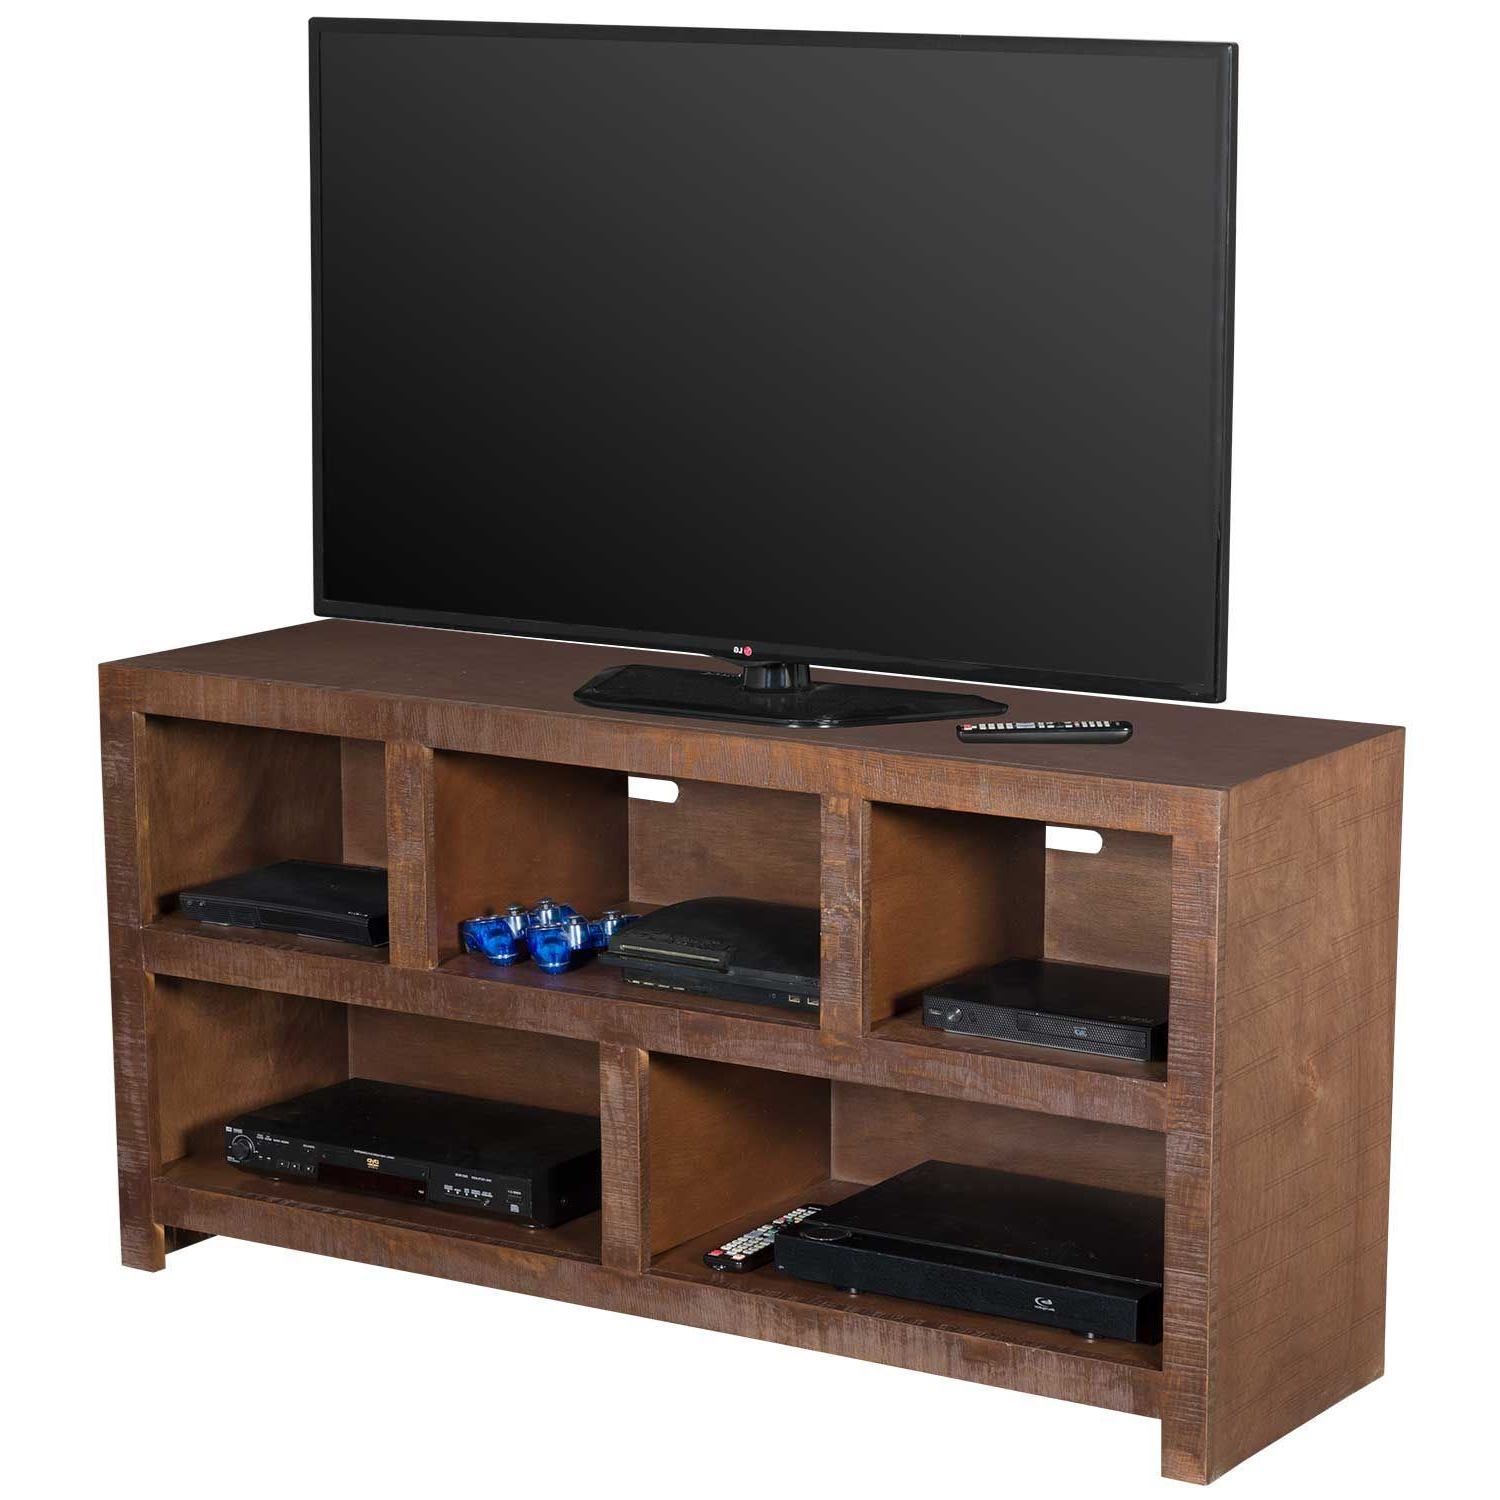 Best And Newest 61 Inch Tv Stands In 54 Inch Canon Tv Stand, Chocolate (View 6 of 20)